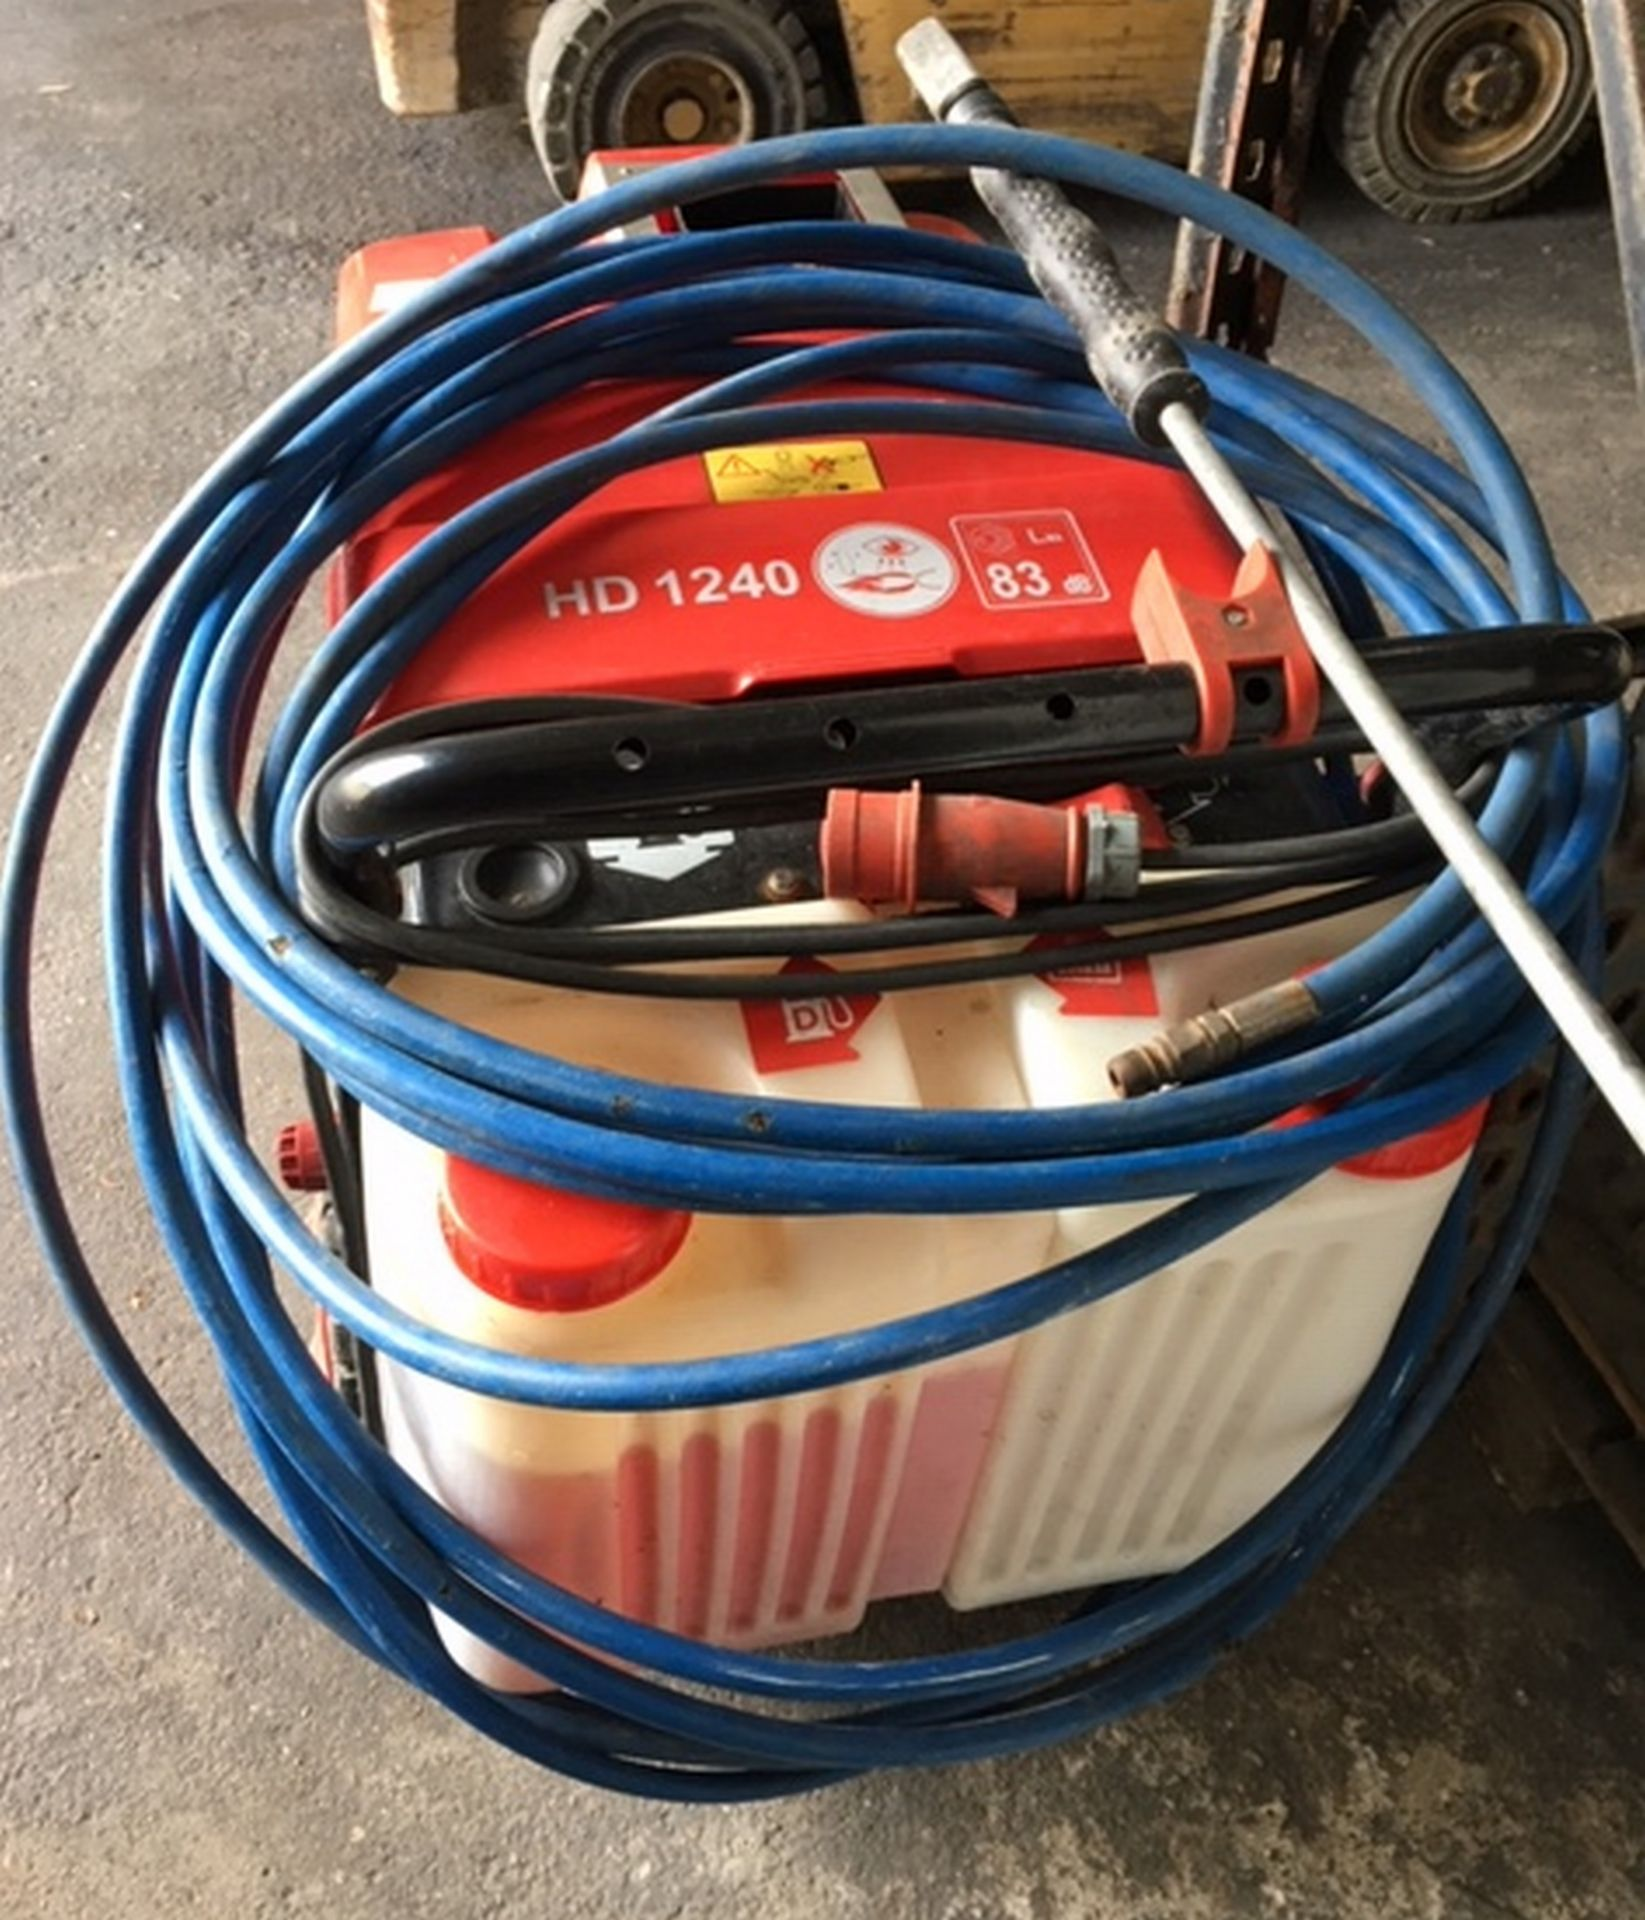 Lot 150 - Erhle Etronic 2 Power Washer with Manuals in an working order.